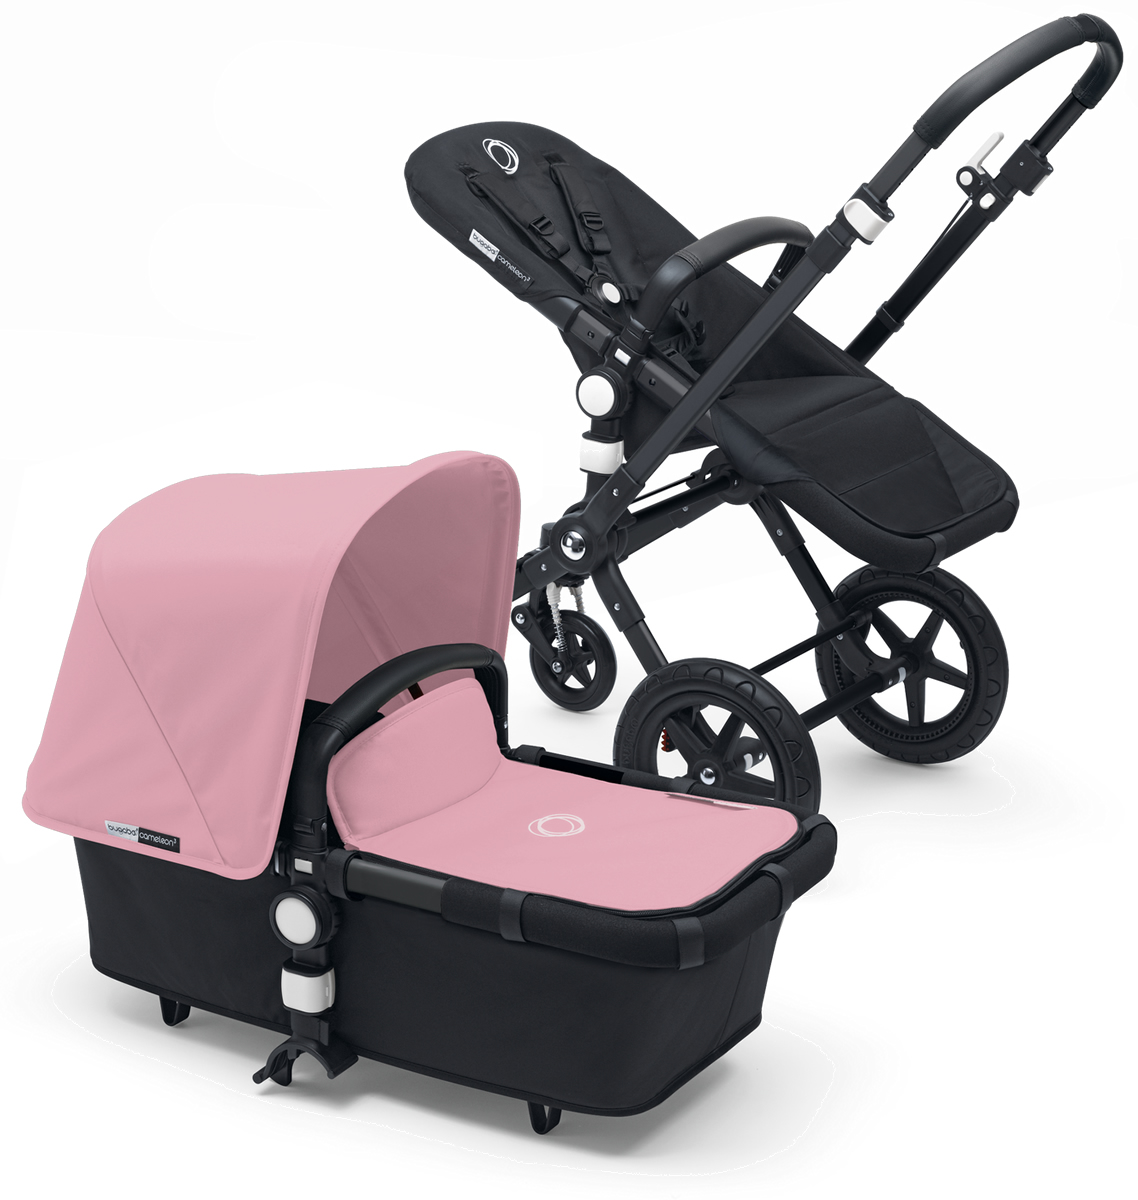 Bugaboo Cameleon 3 Stroller - All Black/Soft Pink